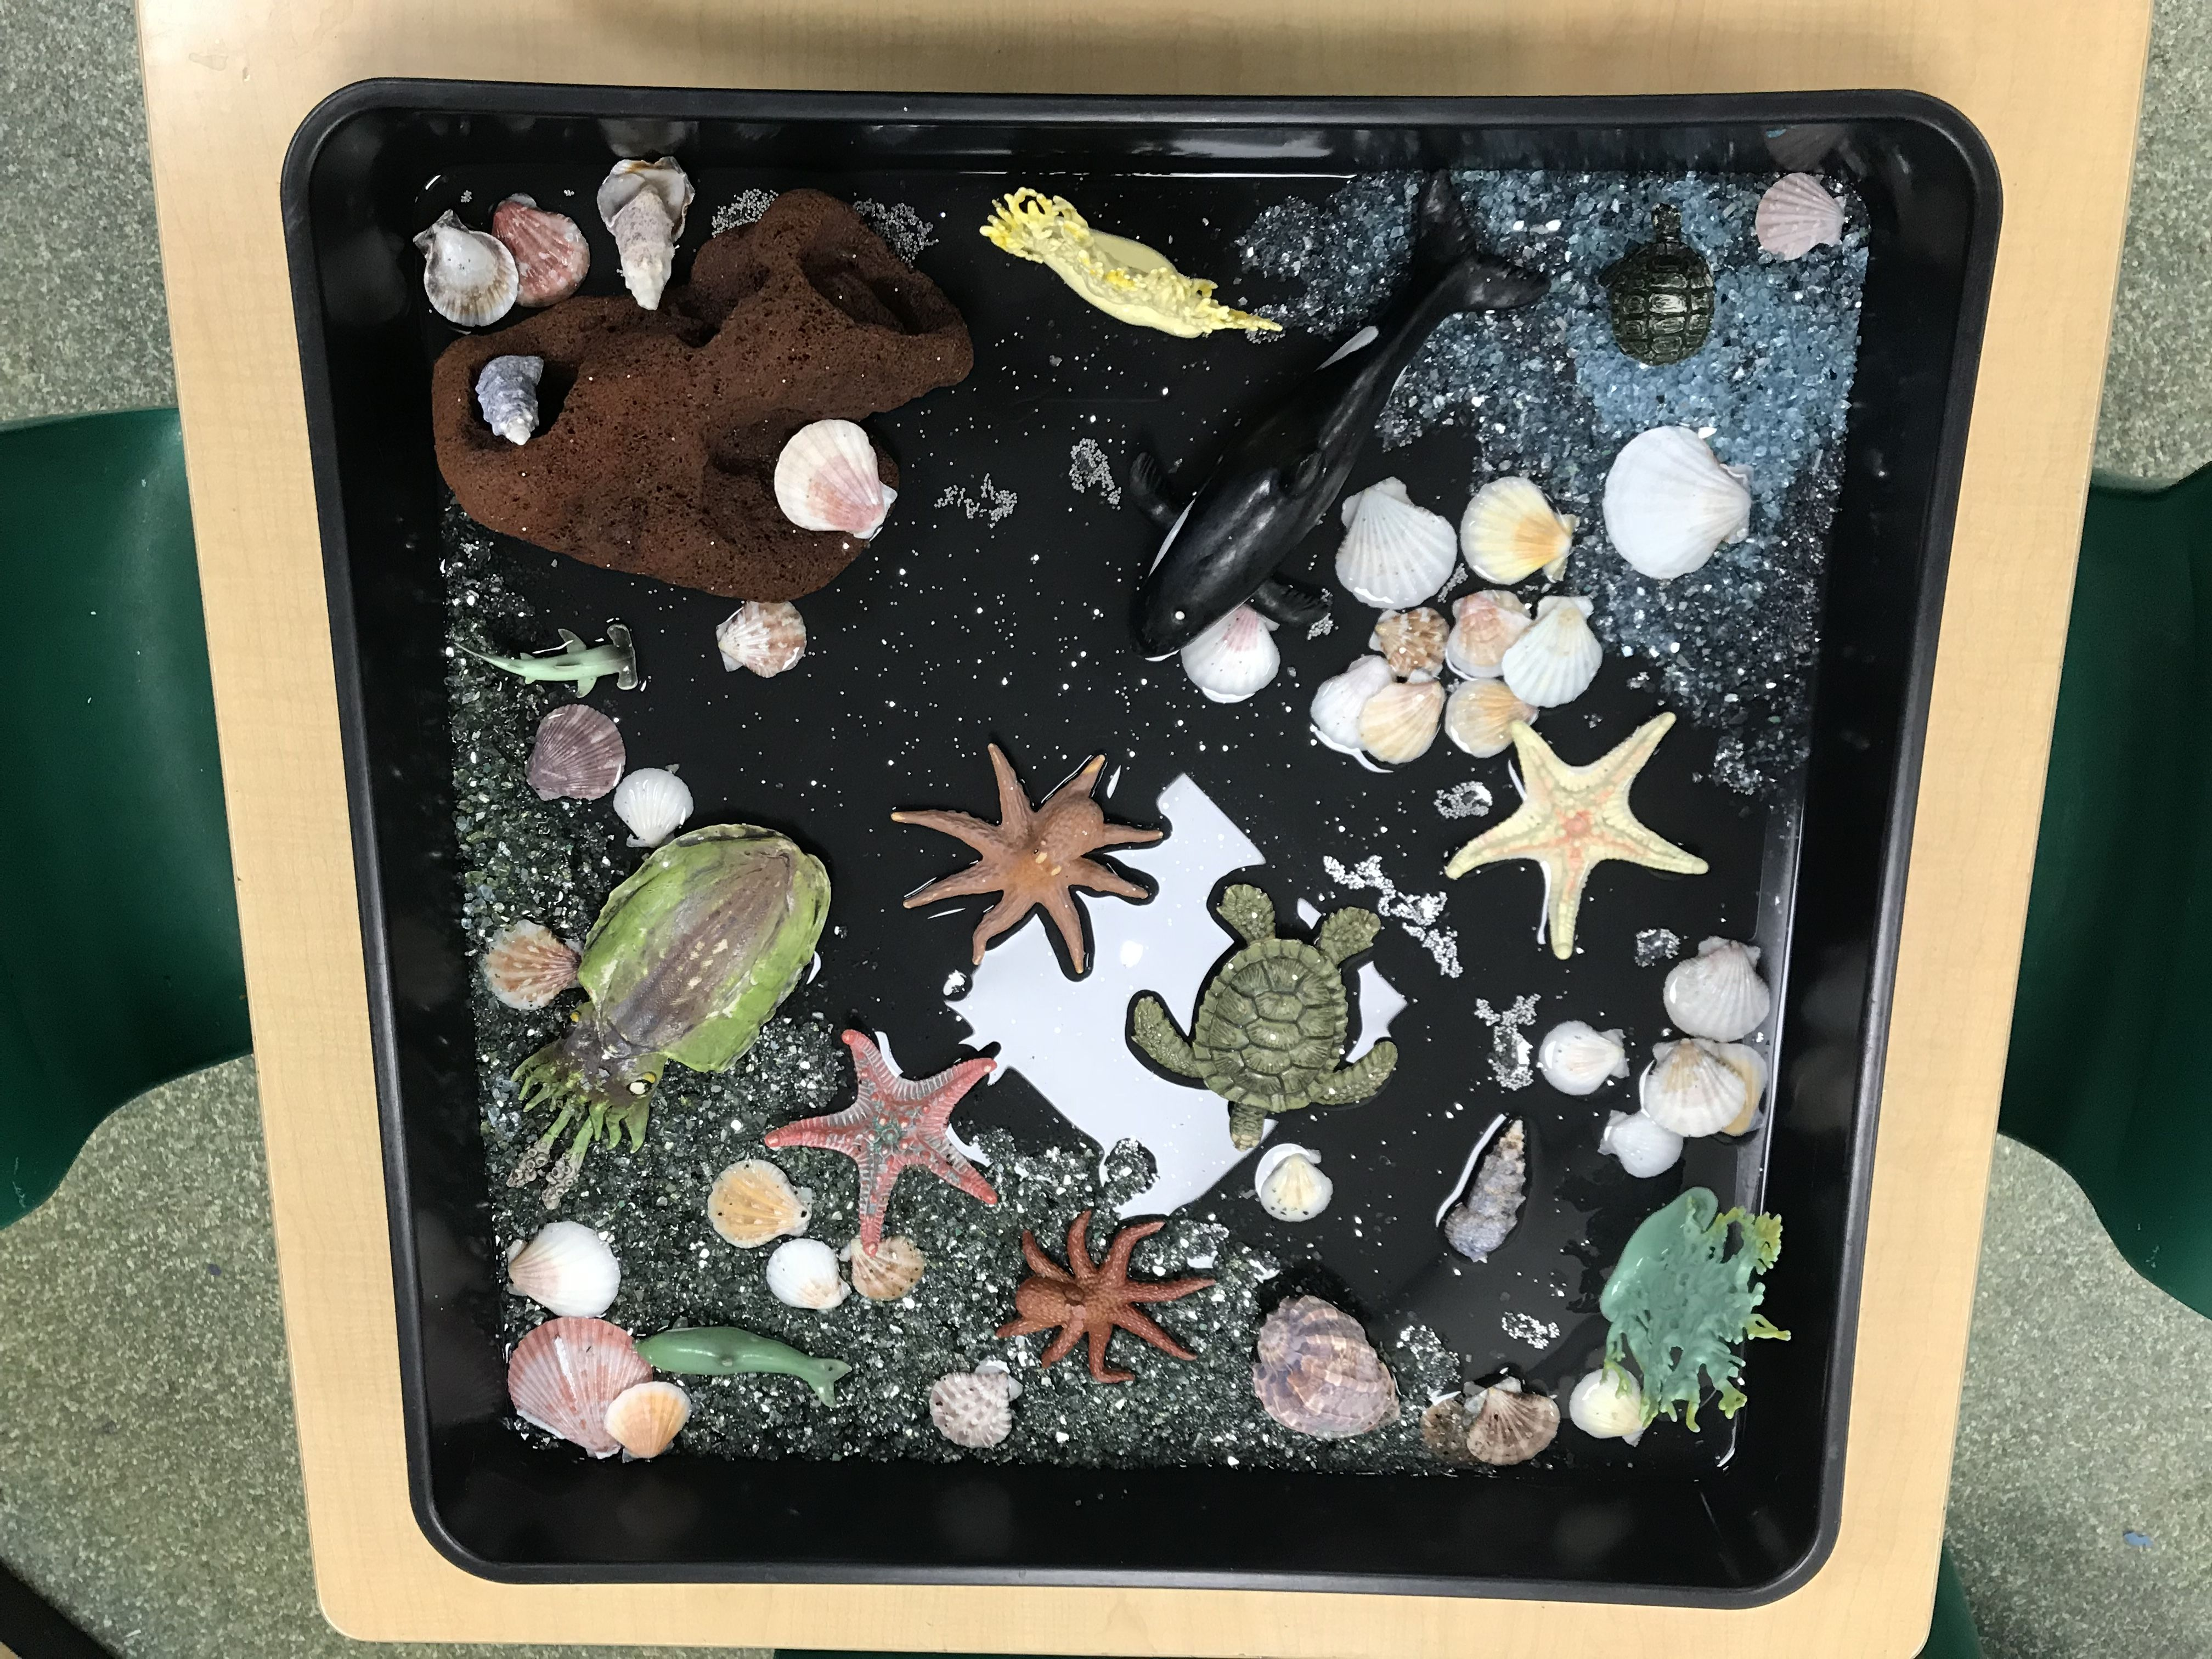 Eyfs Small World Under The Sea Commotion In The Ocean